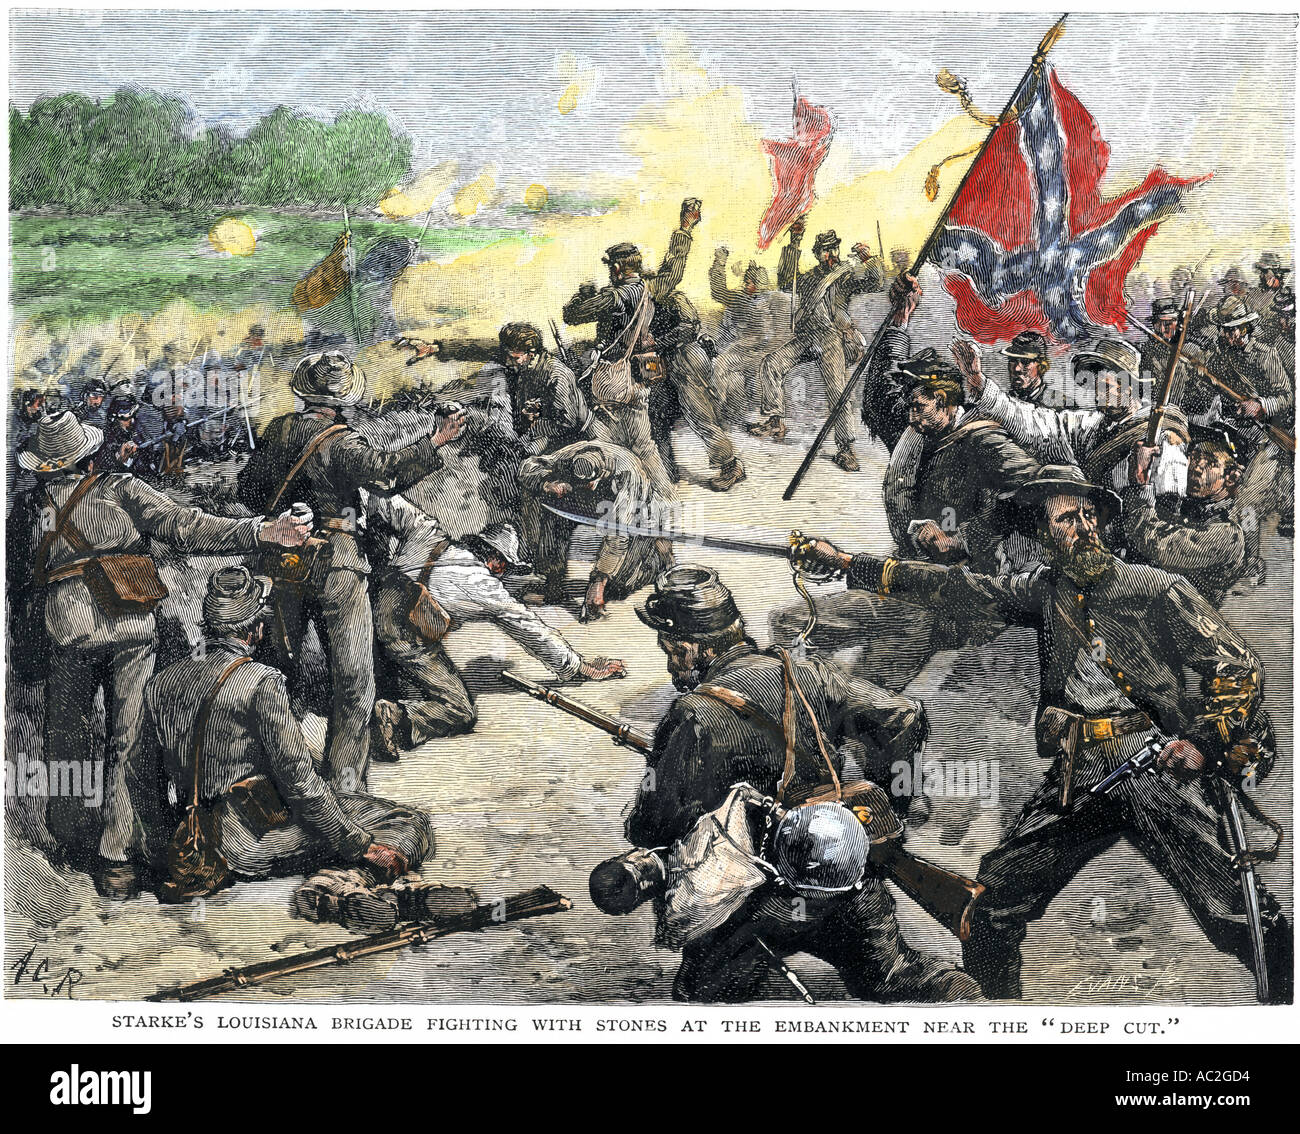 Confederate Louisiana brigade throwing stones at advancing Union Army at the second Battle of Bull Run 1862. Hand-colored woodcut - Stock Image